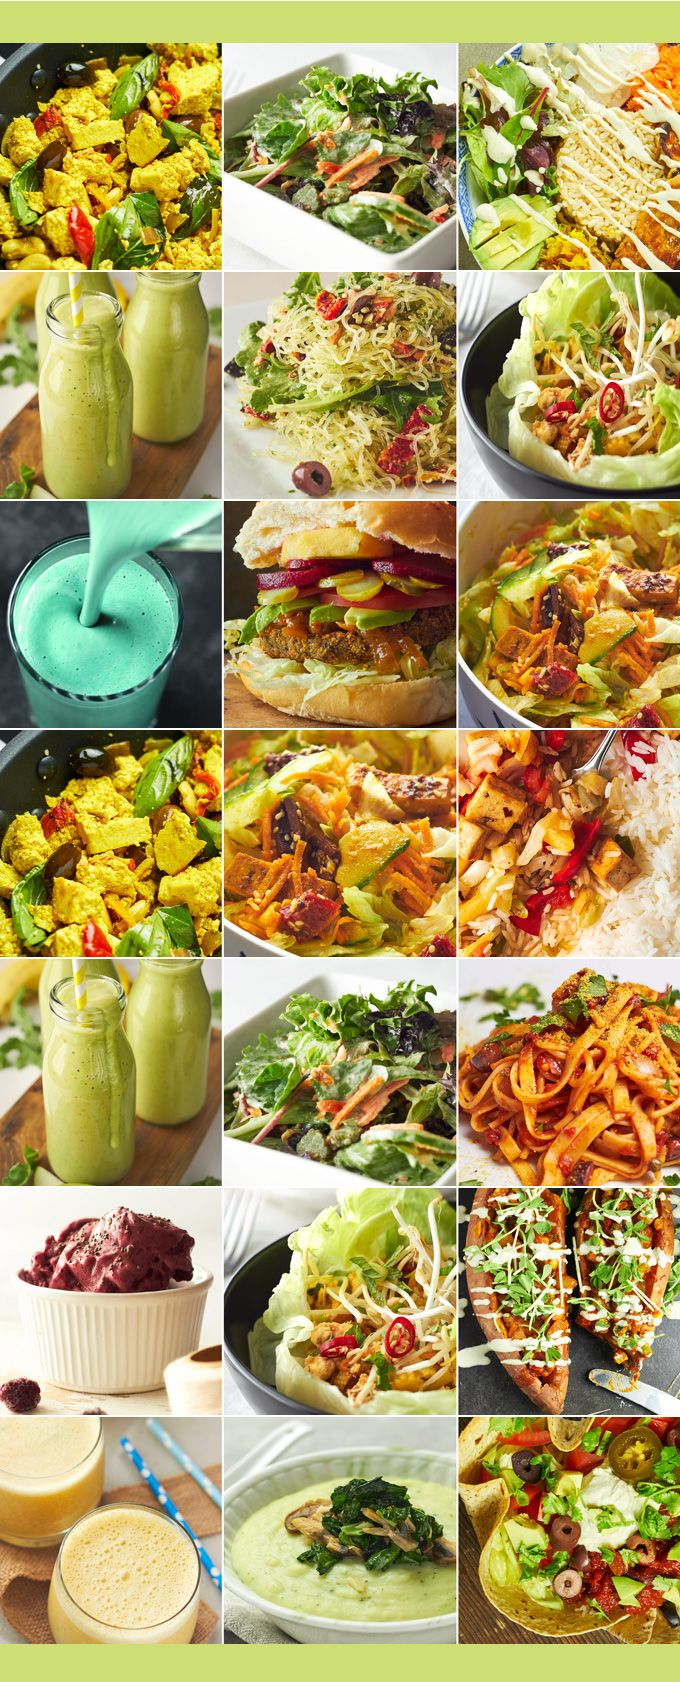 Delightful Vegans, Josh and Katie, share a one-week vegan meal plan that features their delicious easy-to-prepare plant-based gluten-free recipes.